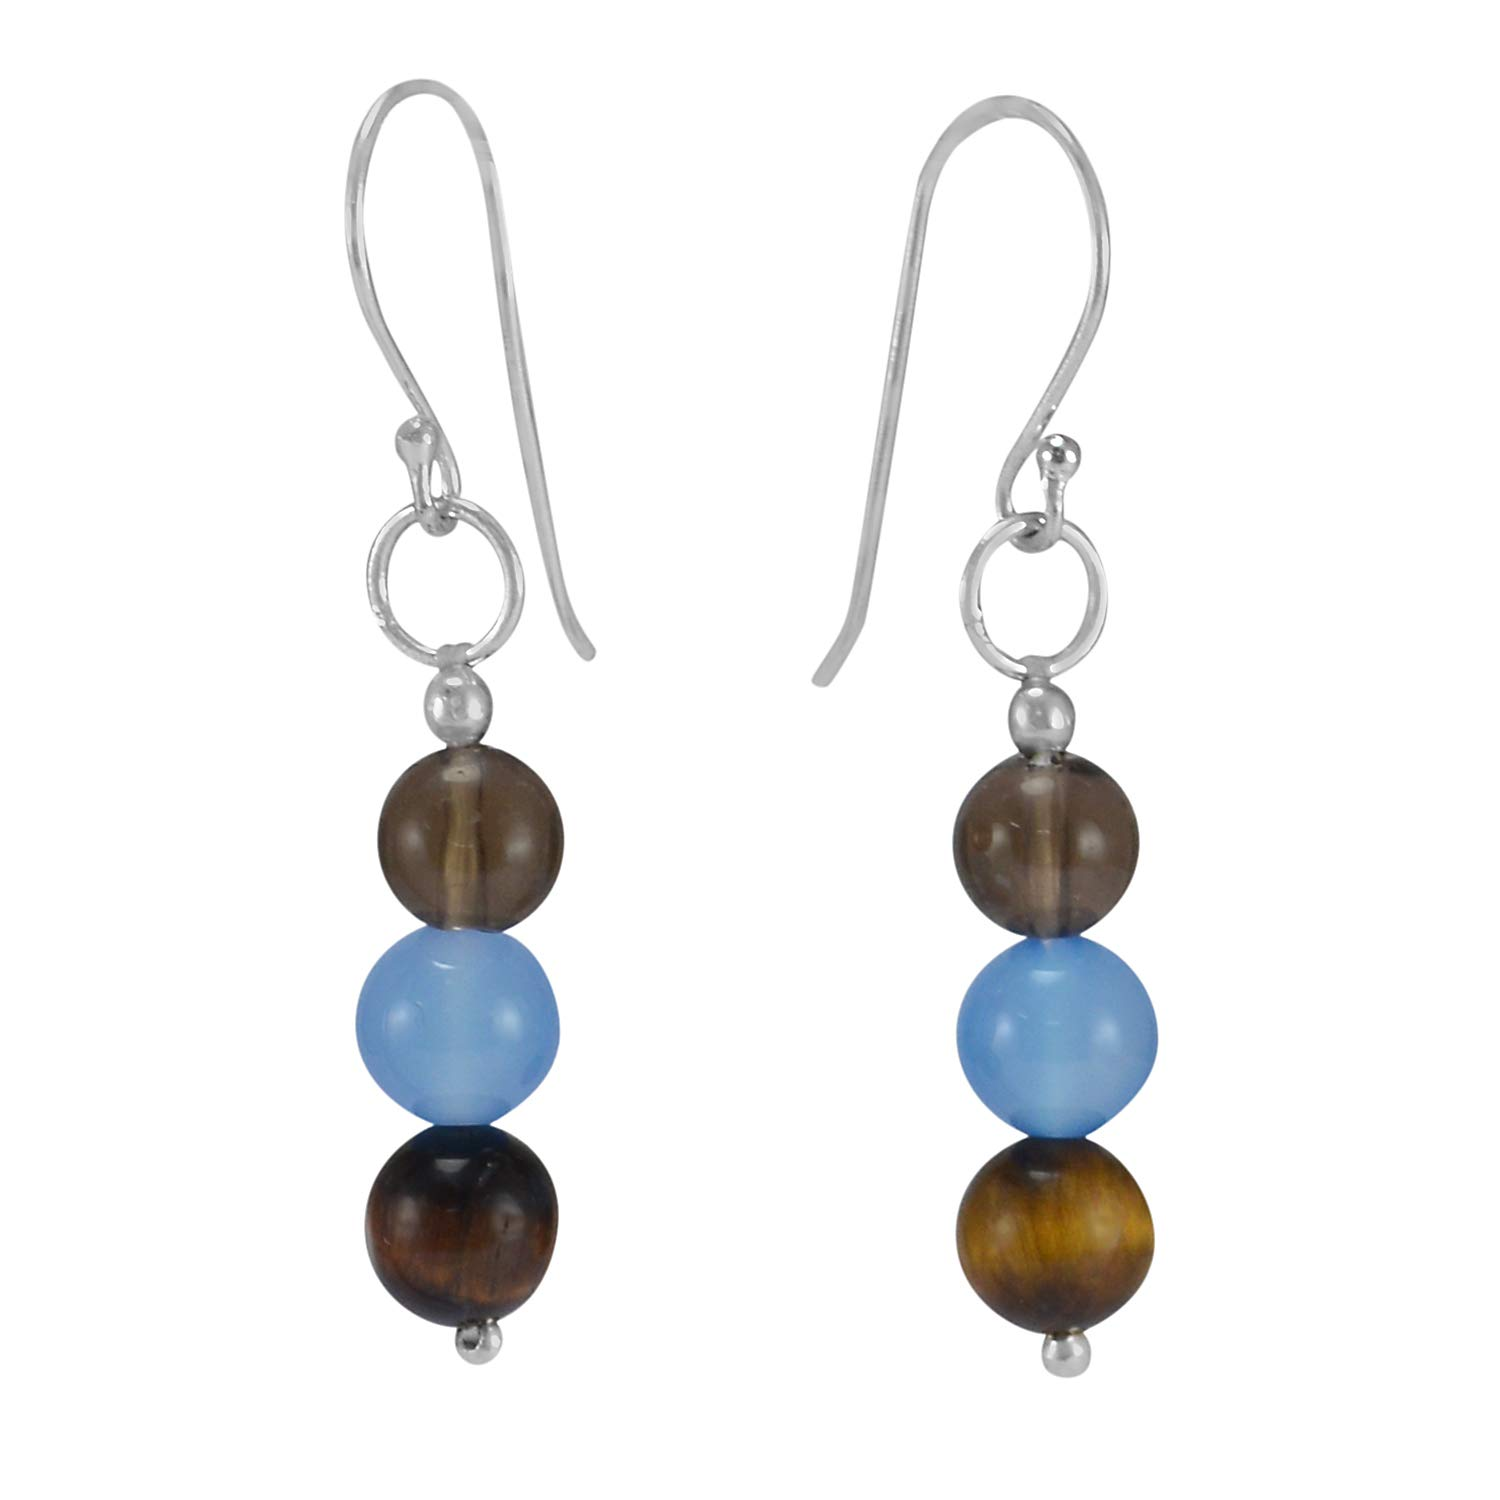 Silvestoo Jaipur Tiger Eye /& Blue Quartz Gemstone 925 Sterling Silver Earring PG-105356